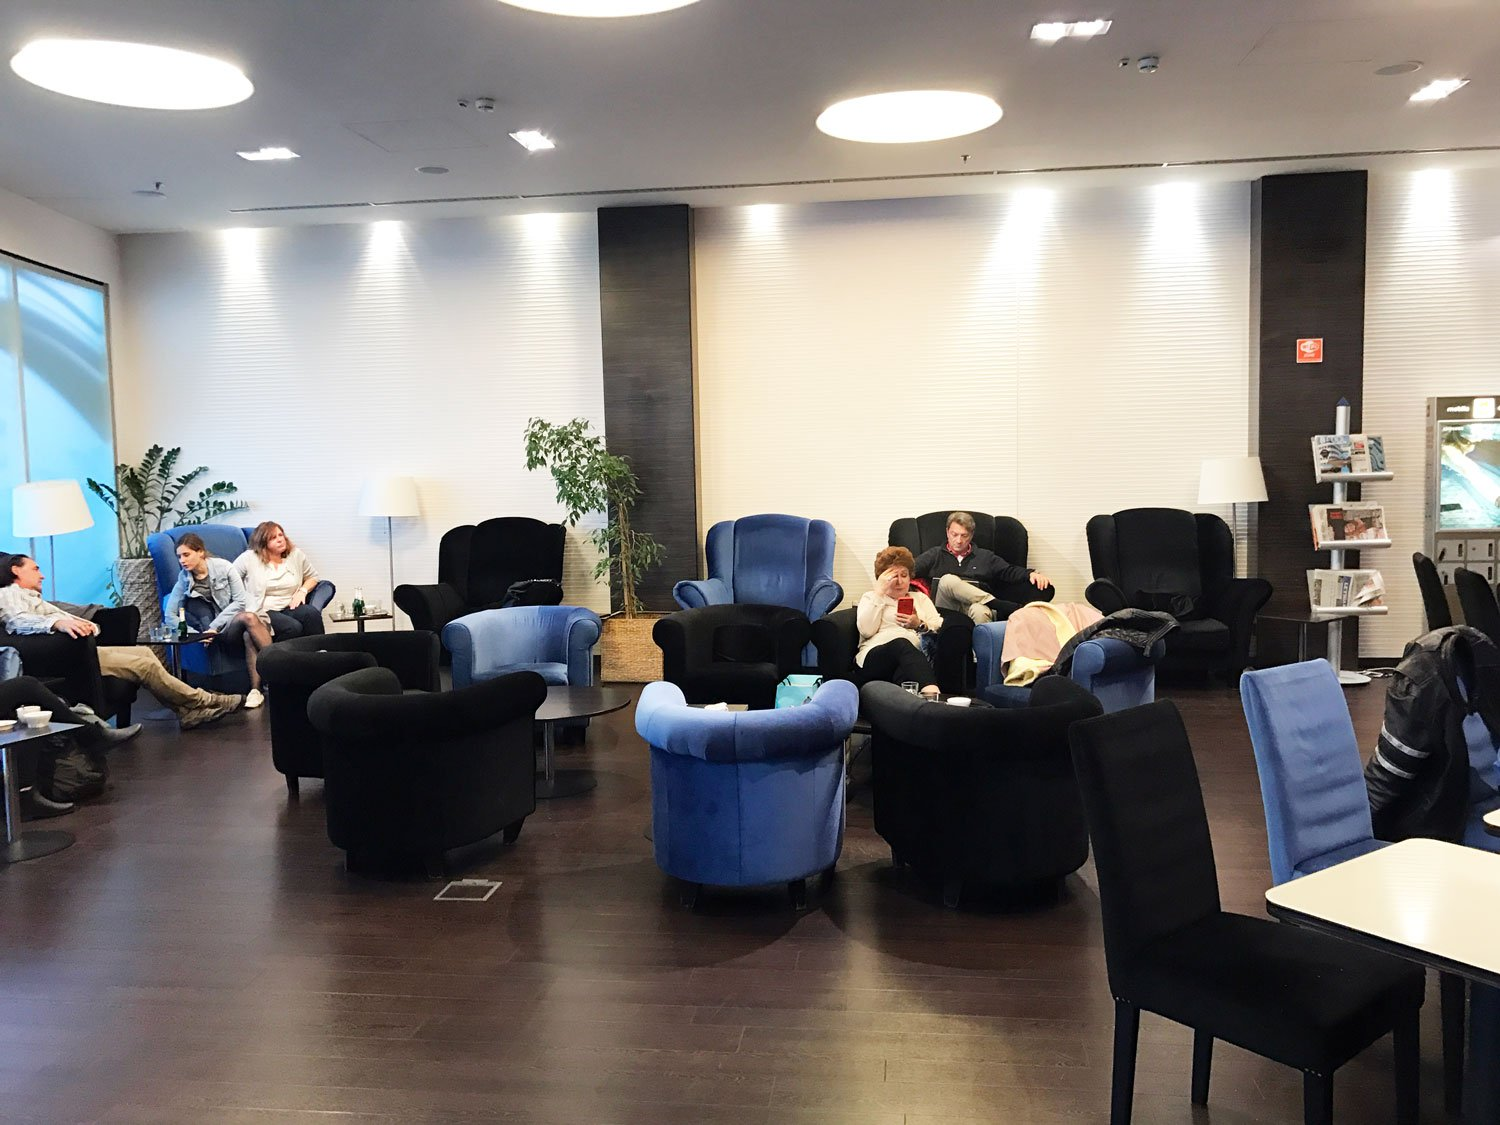 skycourt lounge budapest airport seating